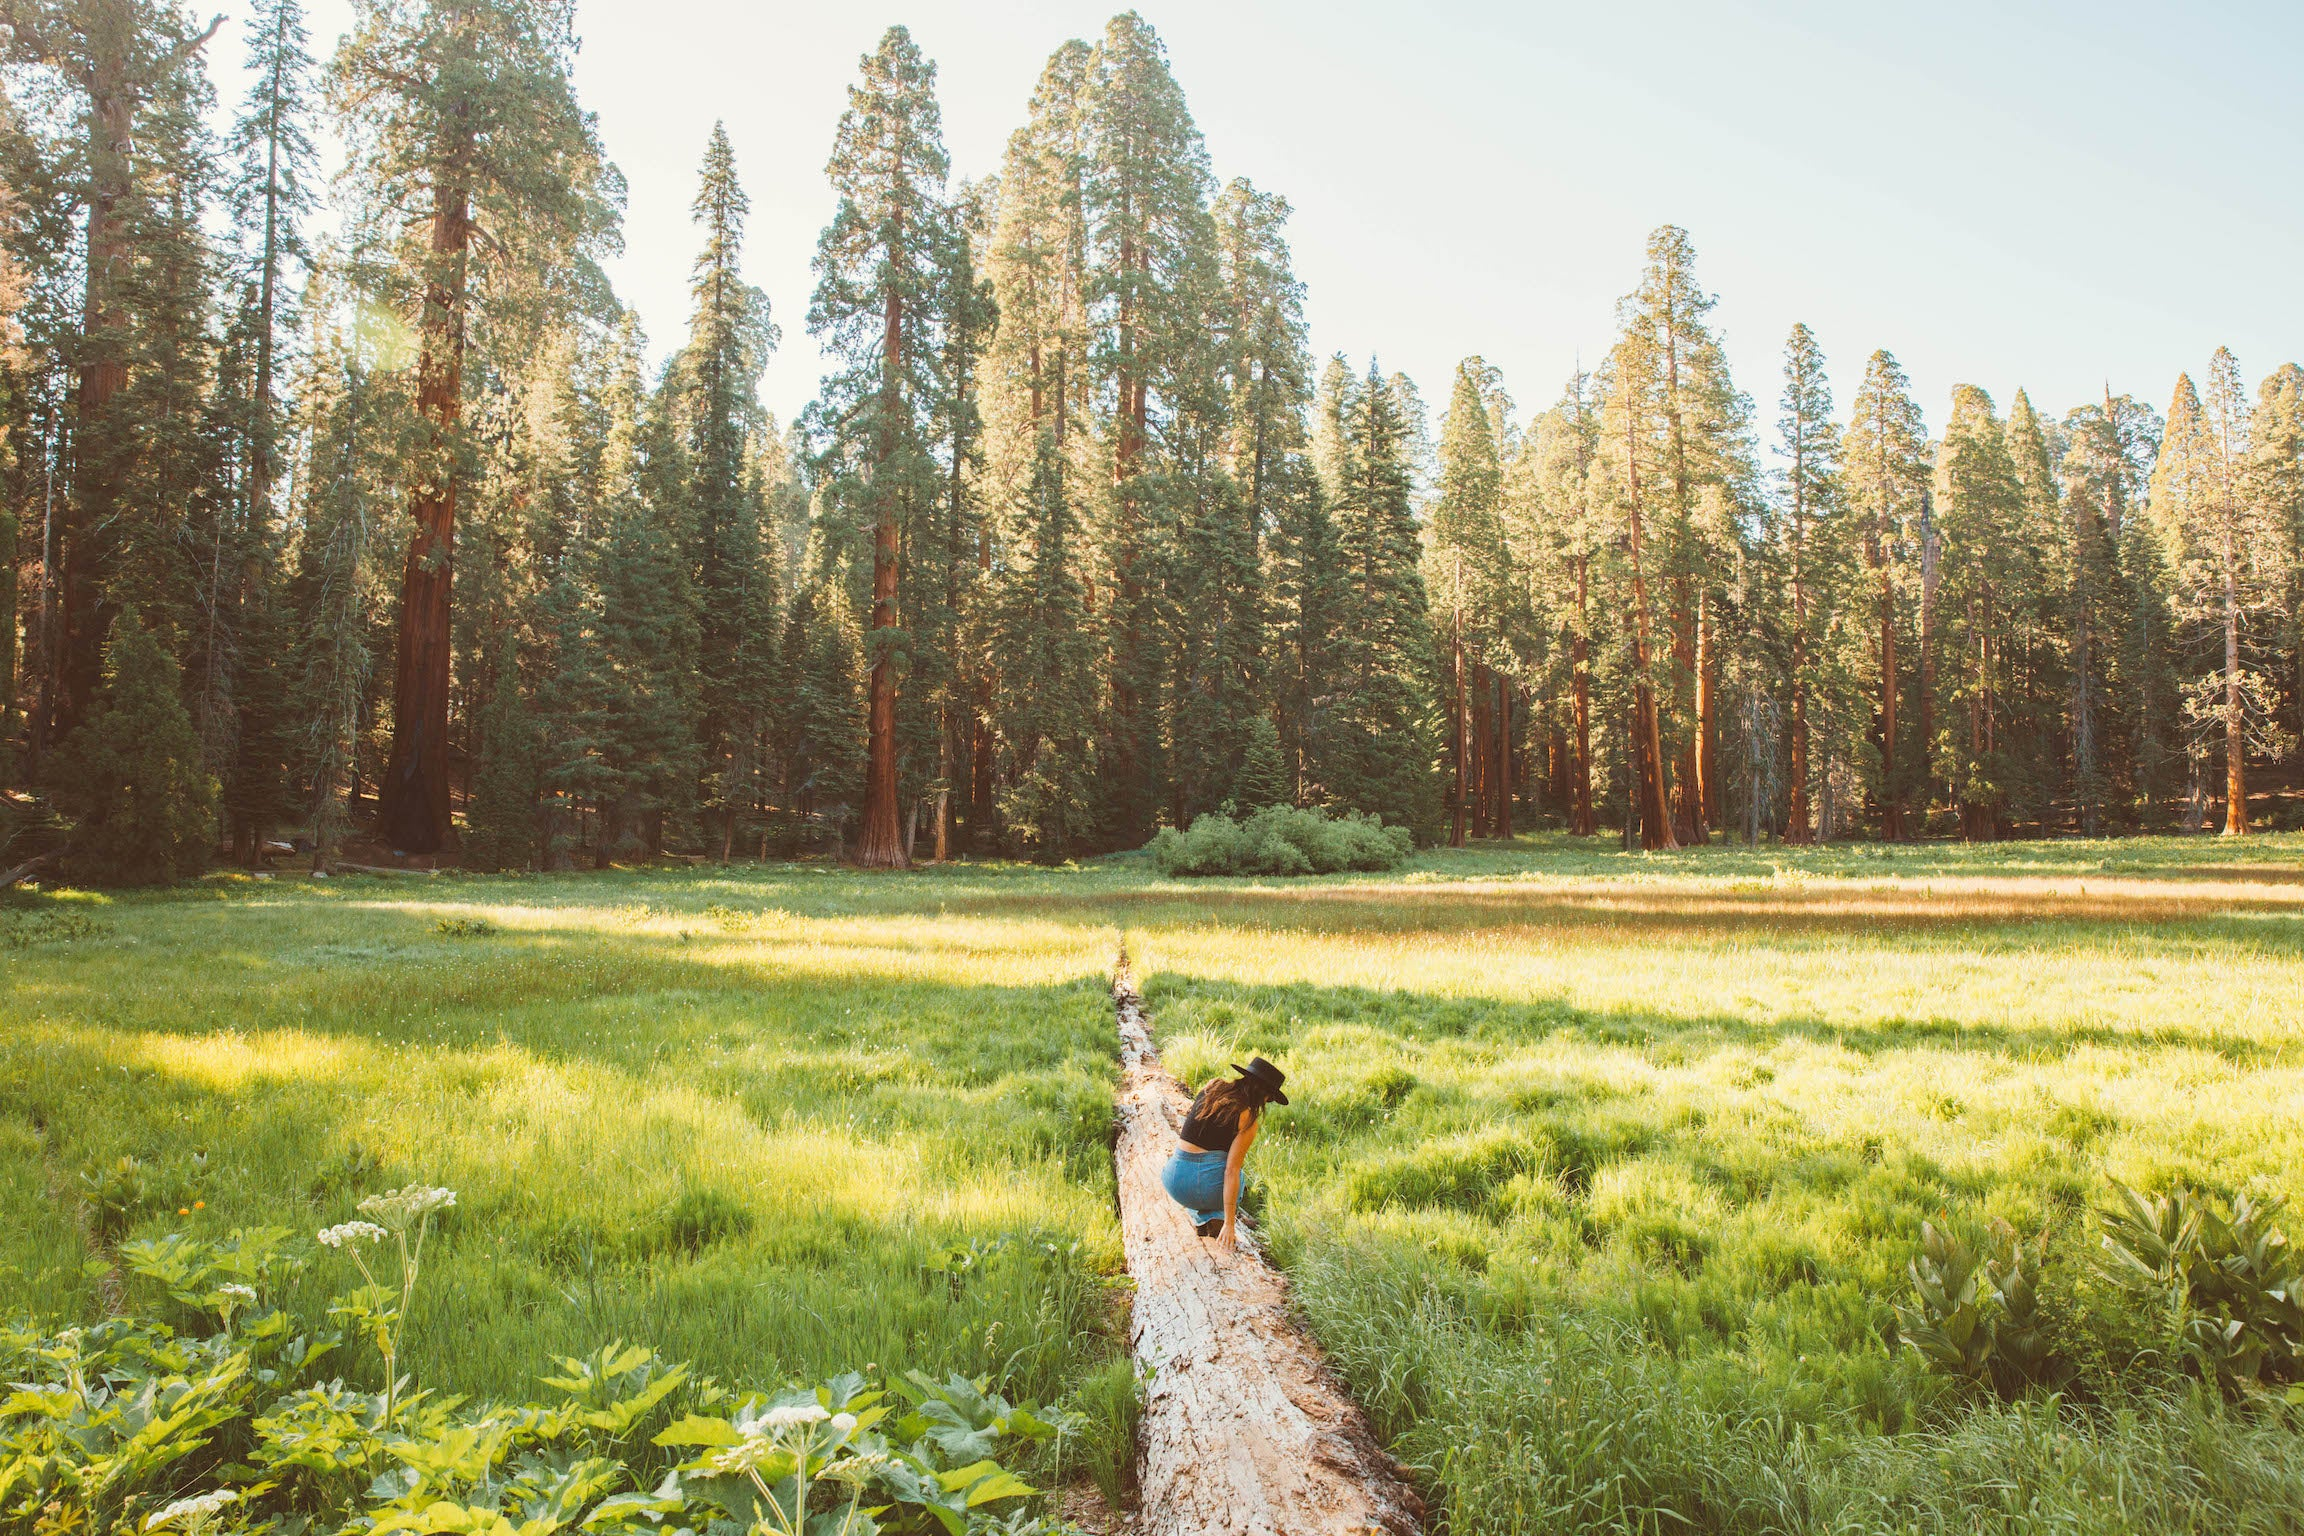 Woman crouches to look at plants while standing on a dirt path in a green field with trees in the distance. Shot by Kate Rentz.